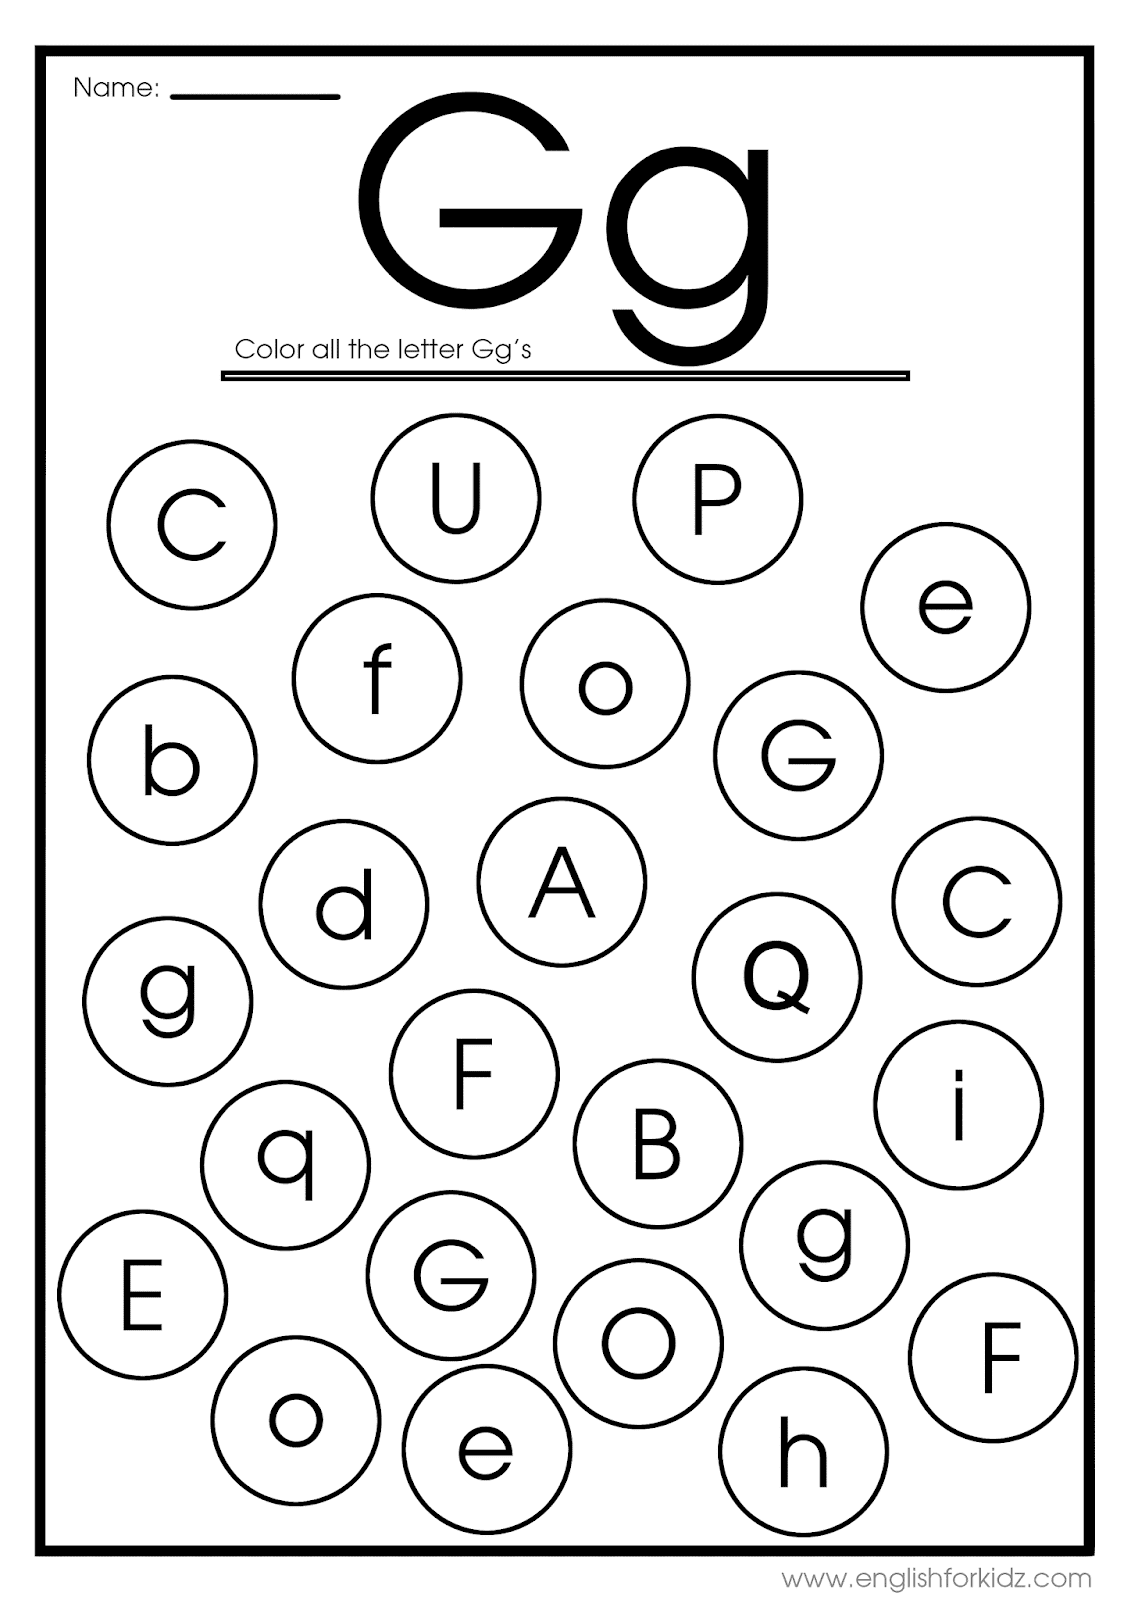 English For Kids Step By Step Letter G Worksheets Flash